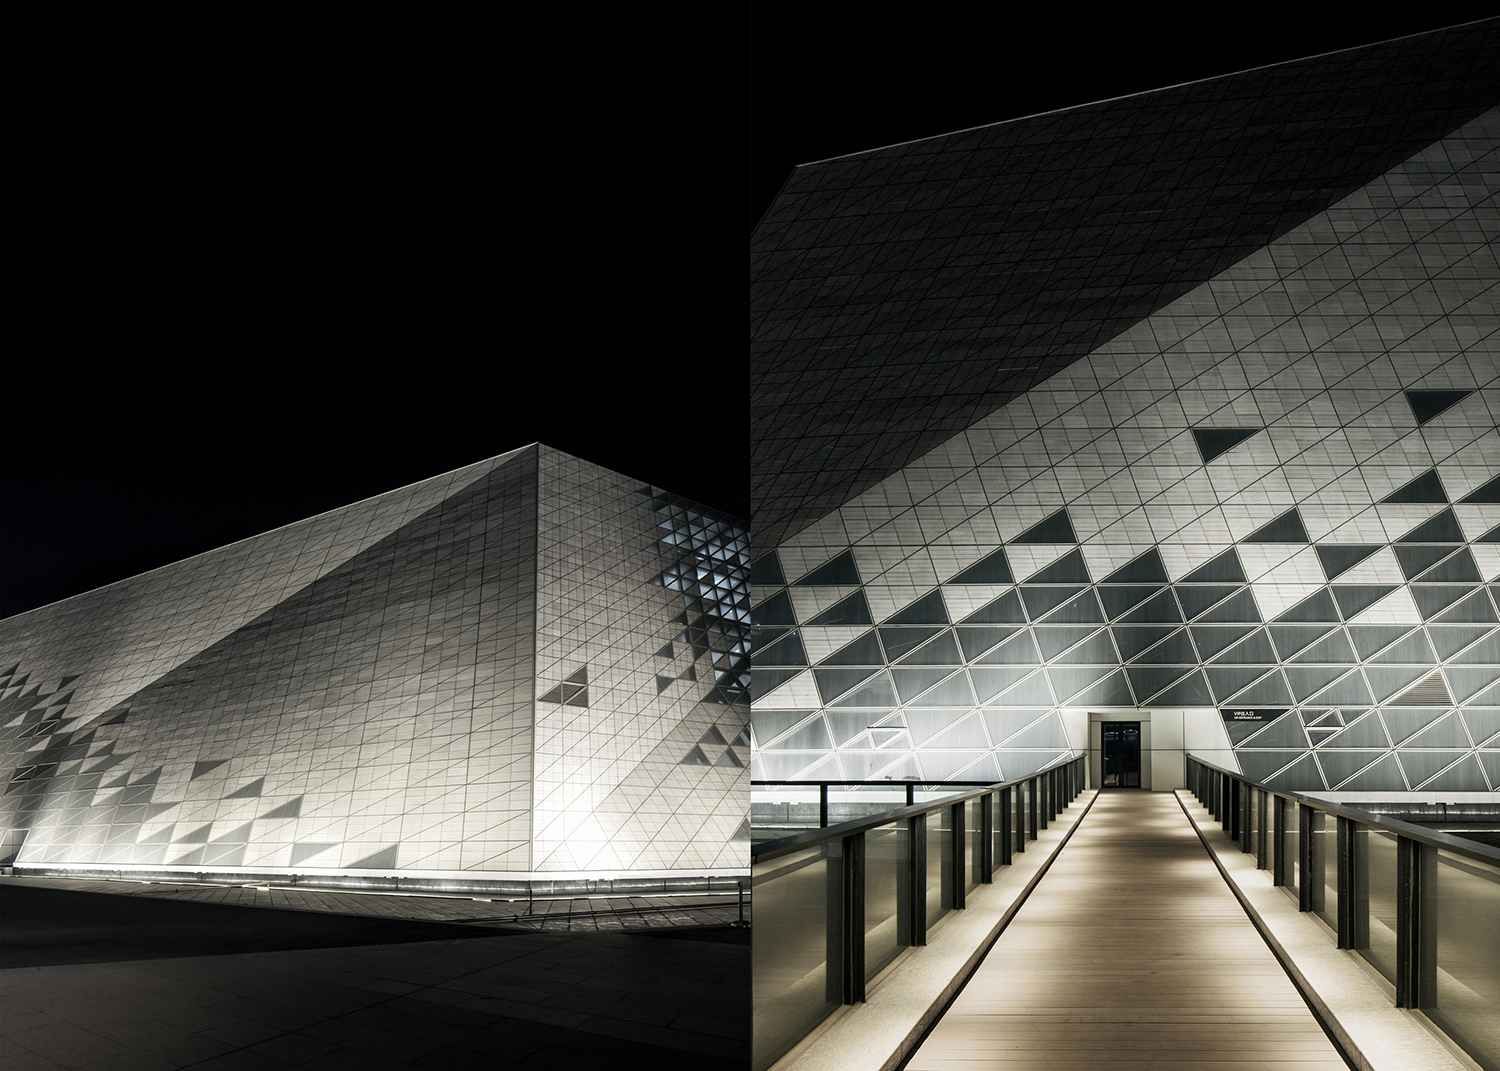 architecture studio . jnn3 cultural center .  jinan, china